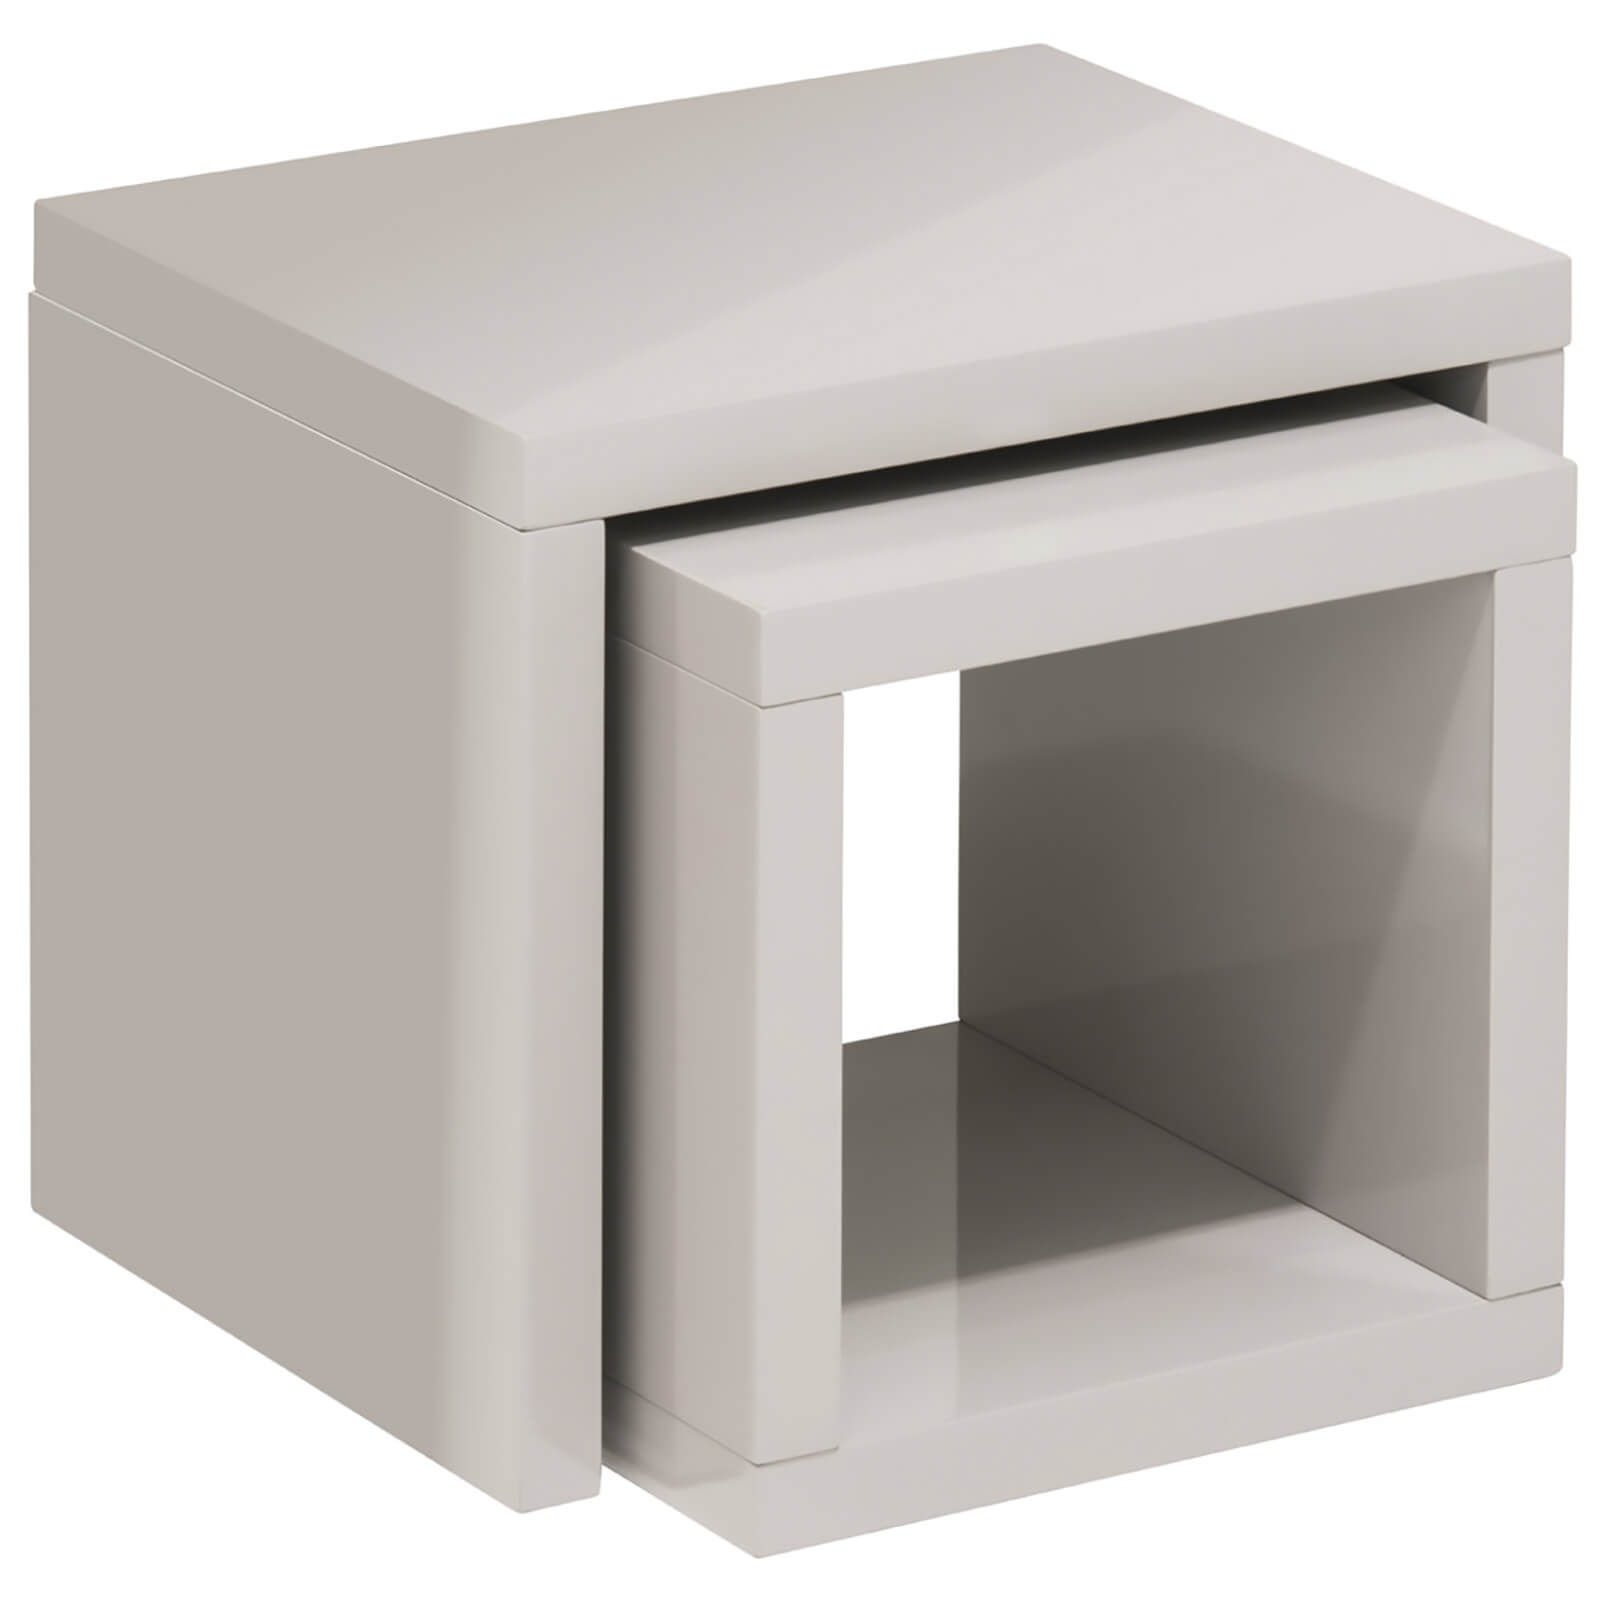 Fifty Five South Madrid Side Cube Tables - Light Grey High Gloss (Set of 2)